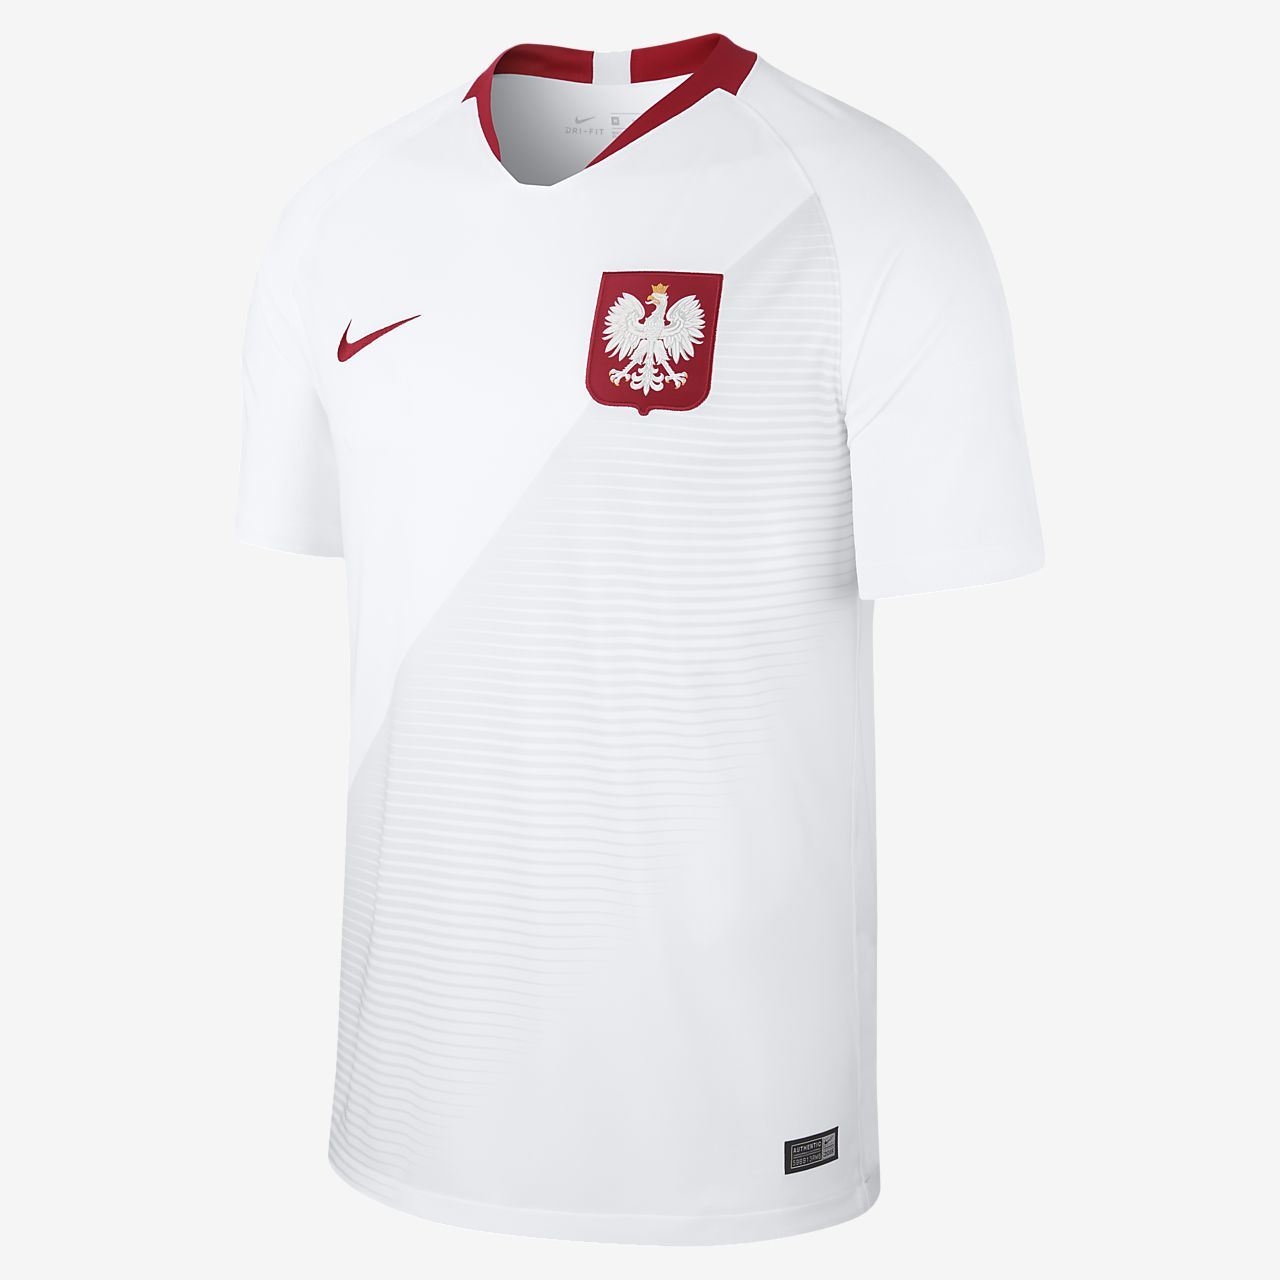 womens poland soccer jersey - techinternationalcorp.com 91224a447c